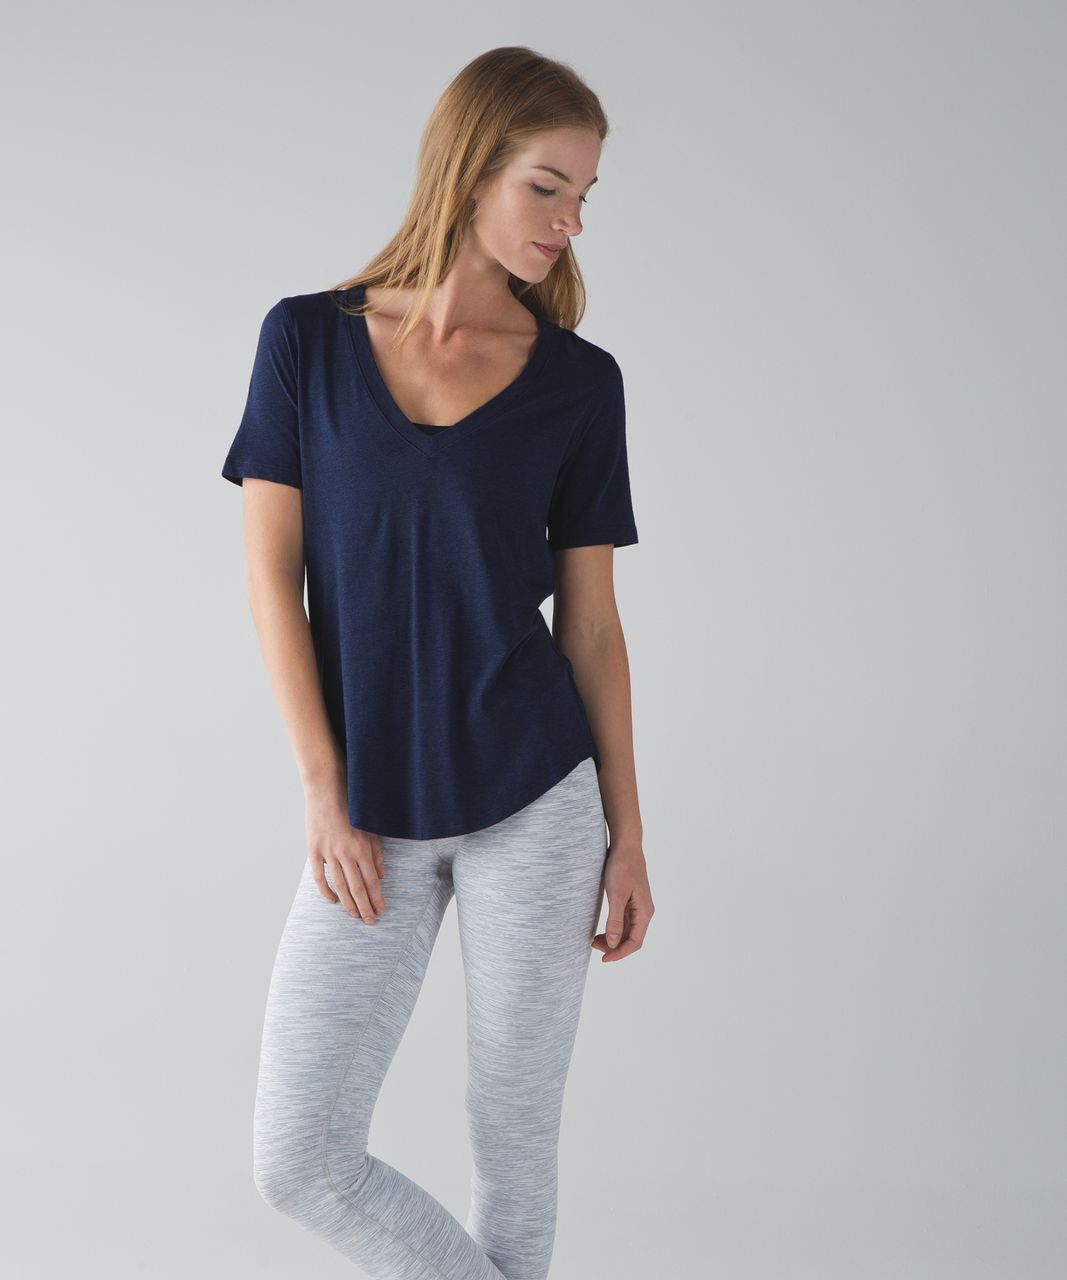 Lululemon Love Tee III - Heathered Hero Blue